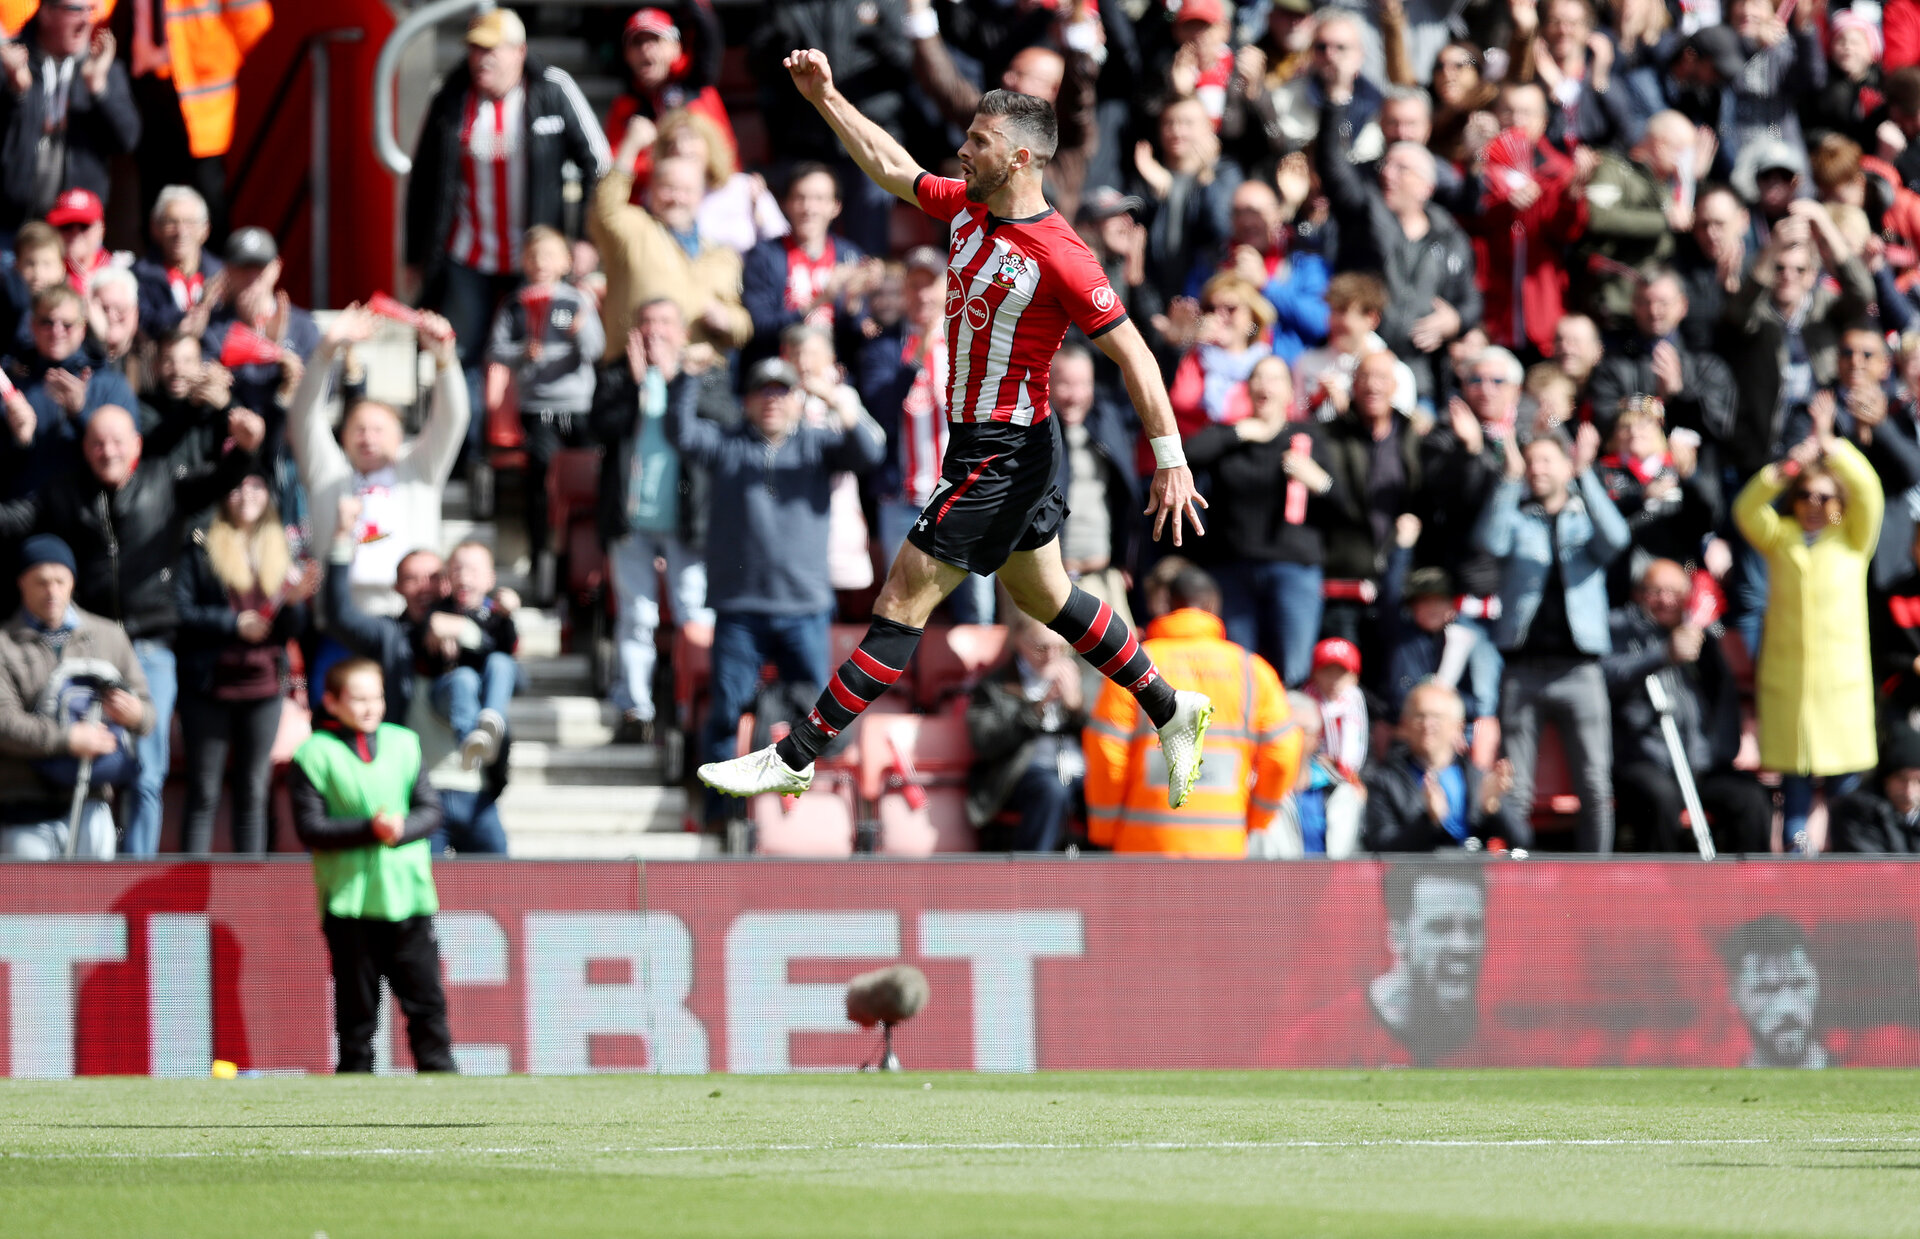 SOUTHAMPTON, ENGLAND - APRIL 27: Shane Long of Southampton celebrstes after opening the scoring during the Premier League match between Southampton FC and AFC Bournemouth at St Mary's Stadium on April 27, 2019 in Southampton, United Kingdom. (Photo by Matt Watson/Southampton FC via Getty Images)